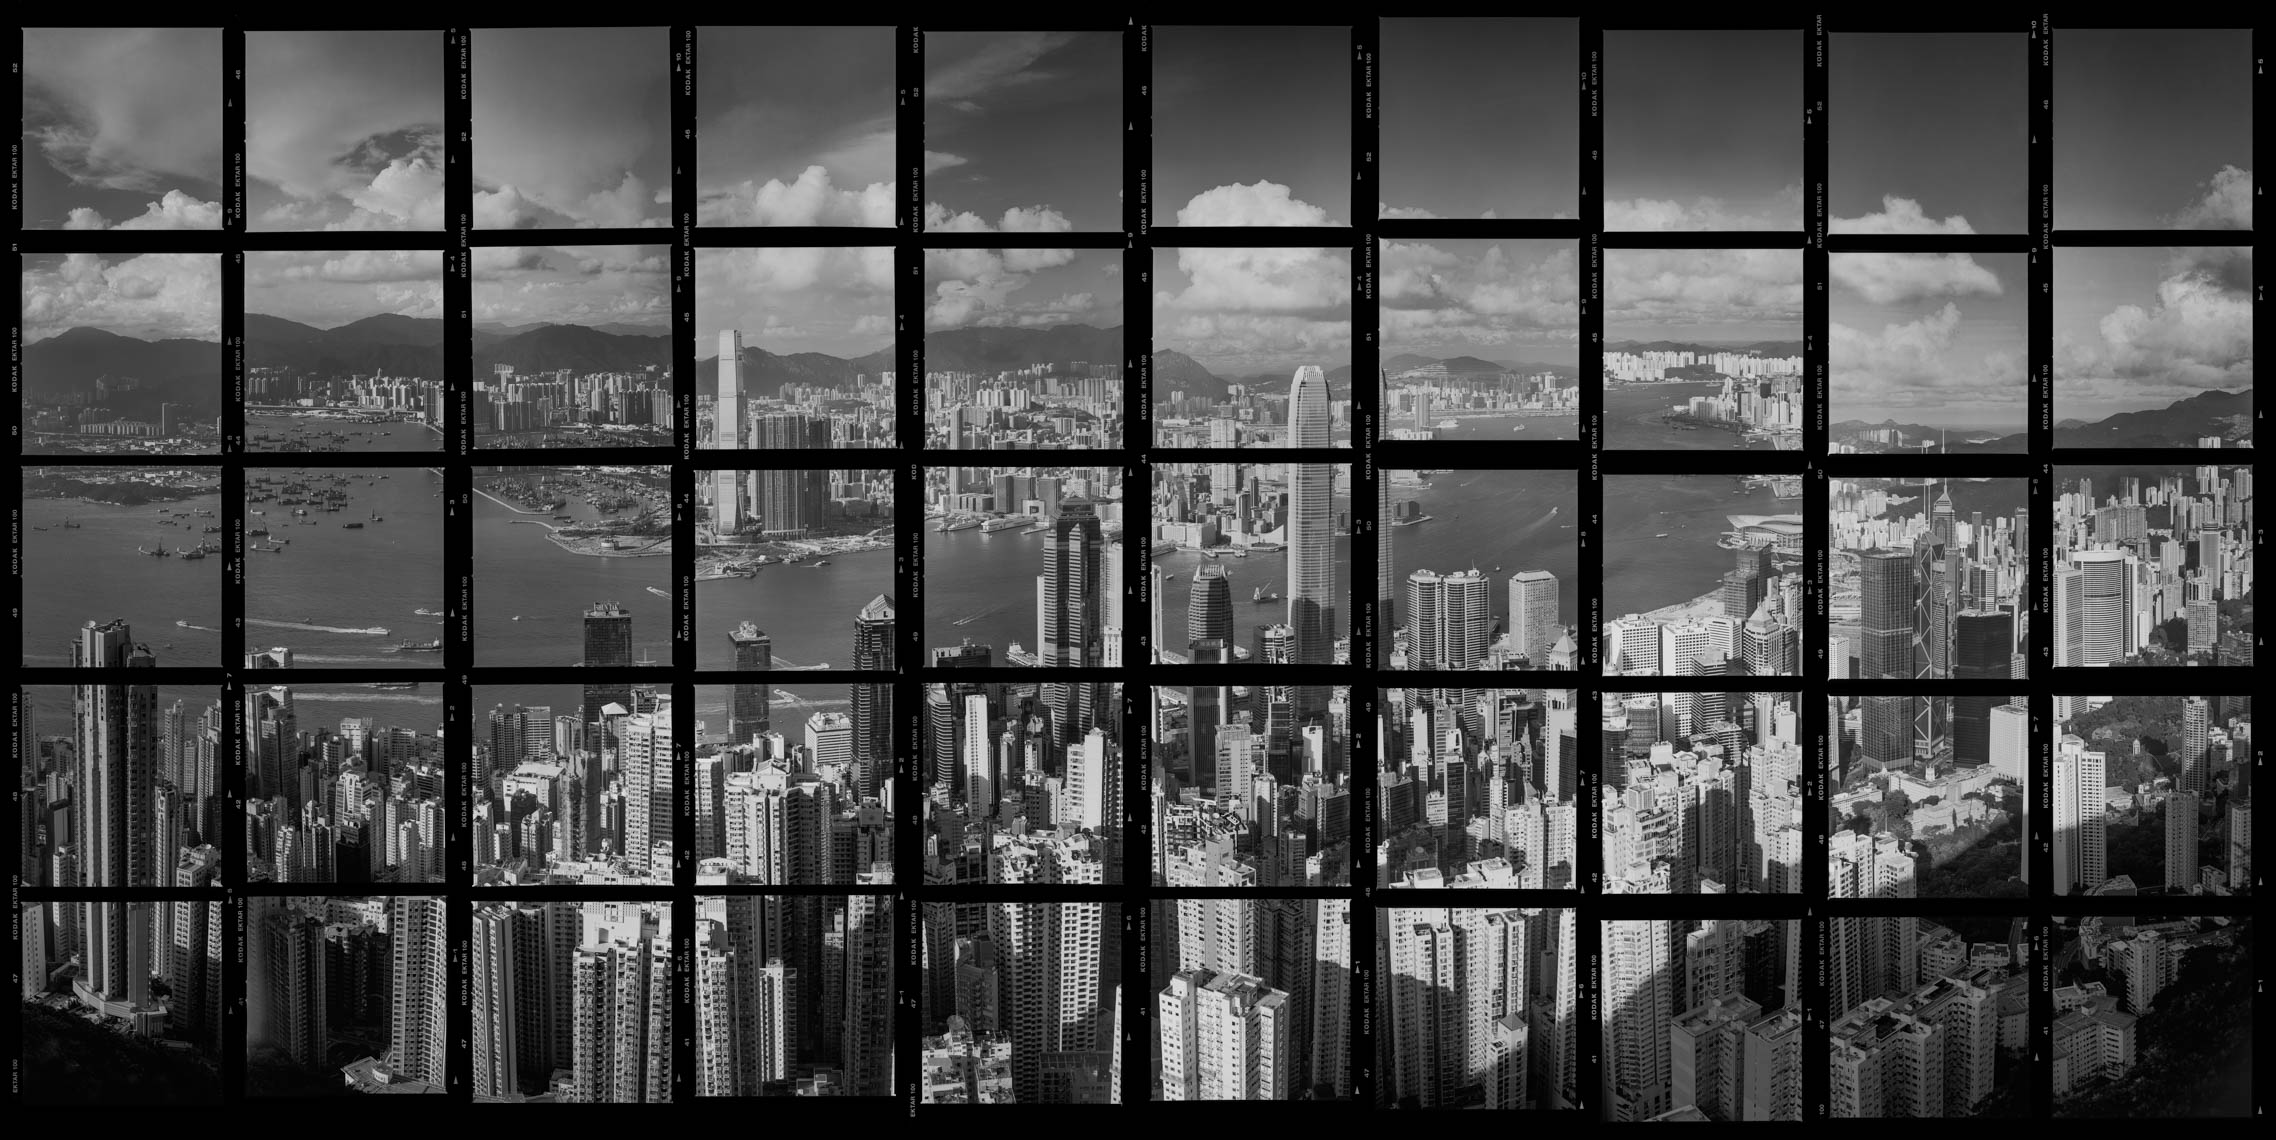 Hong-Kong-Harbour-Contact-2014